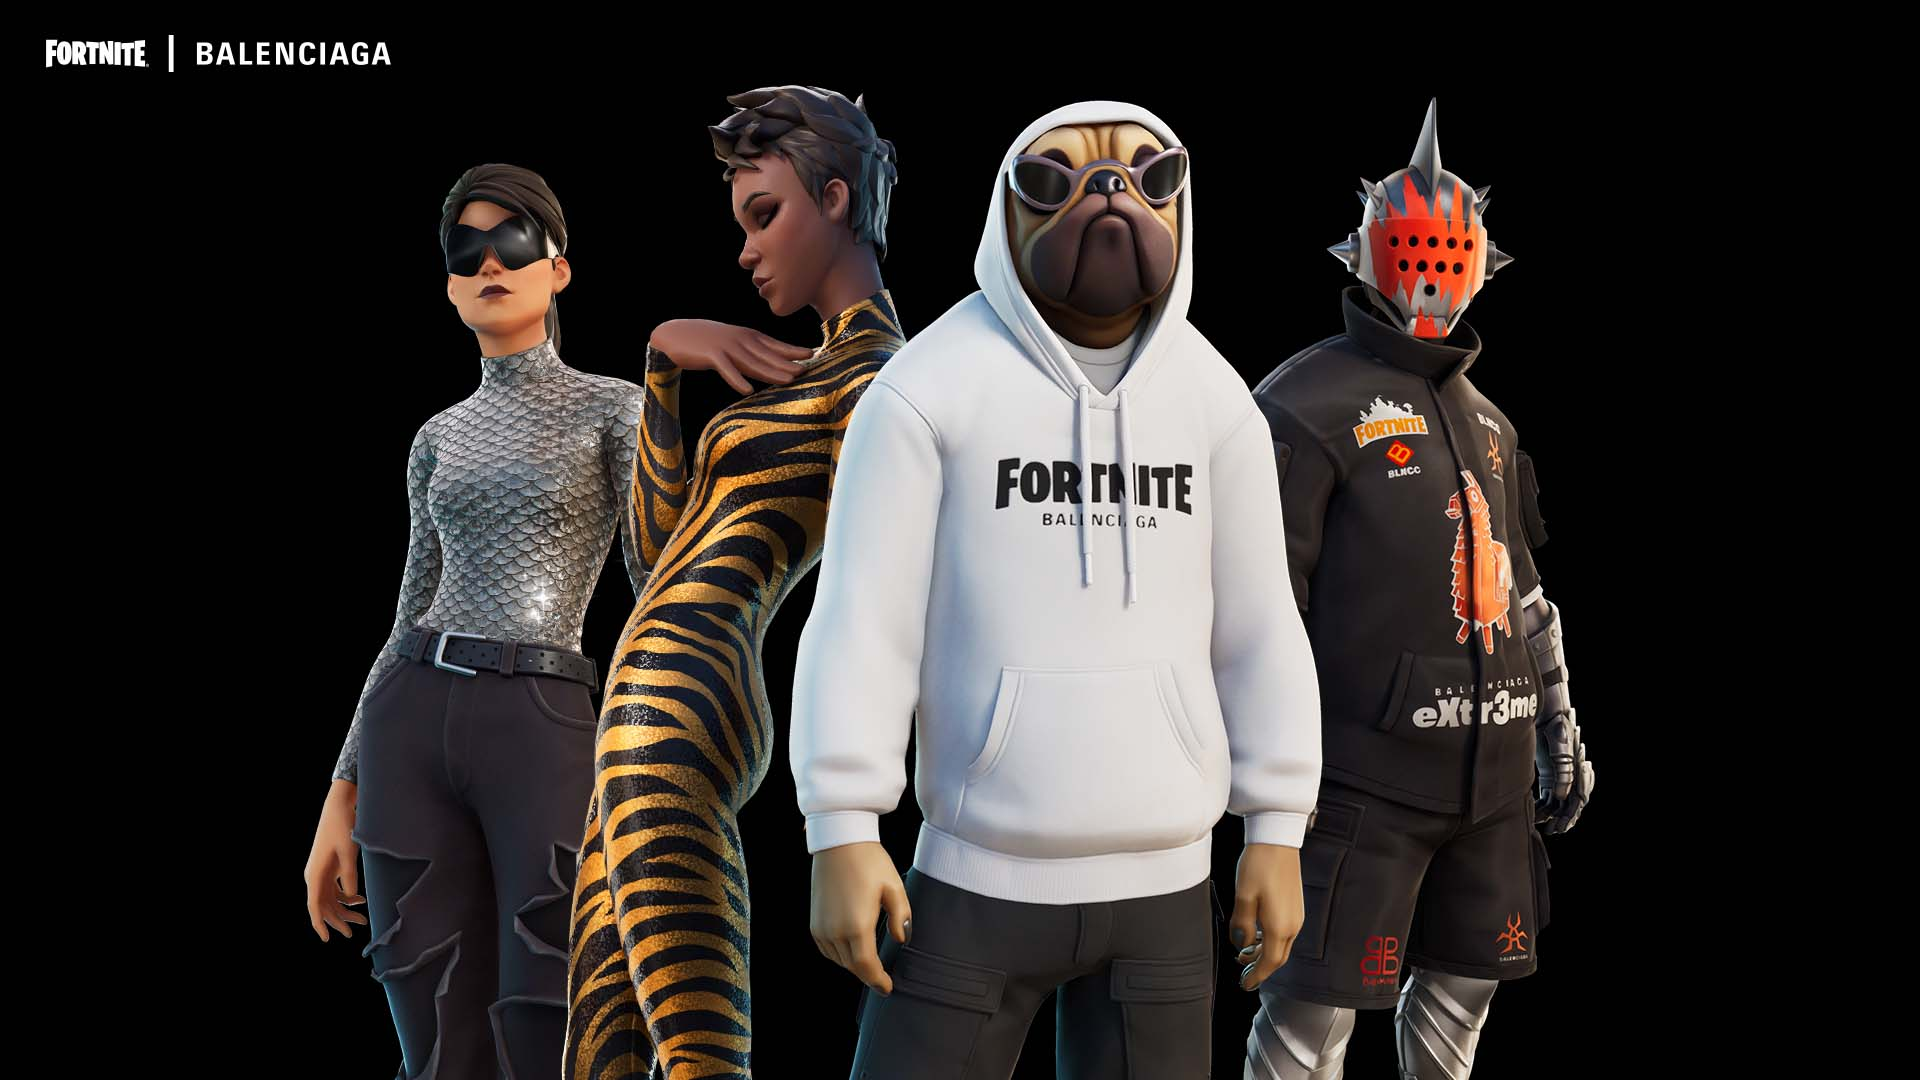 a still from balenciaga's ss22 fortnite collection